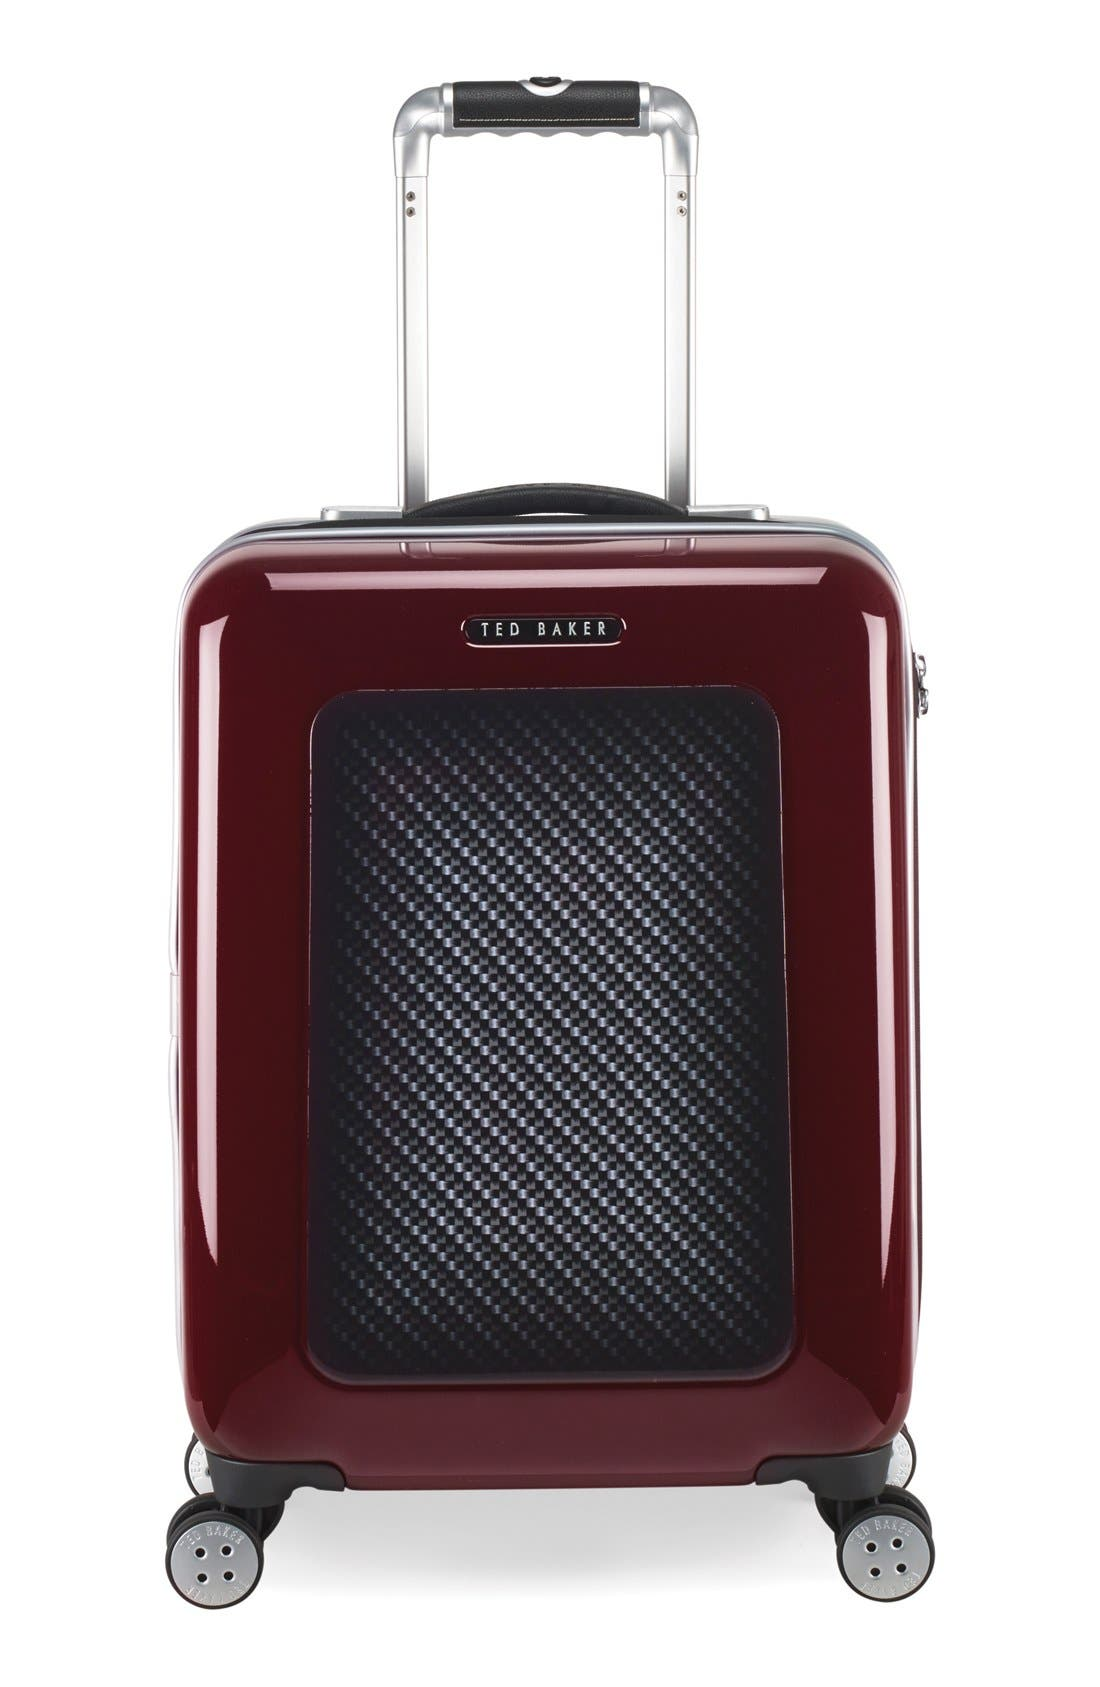 TED BAKER LONDON Small Burgundy Four Wheel Suitcase